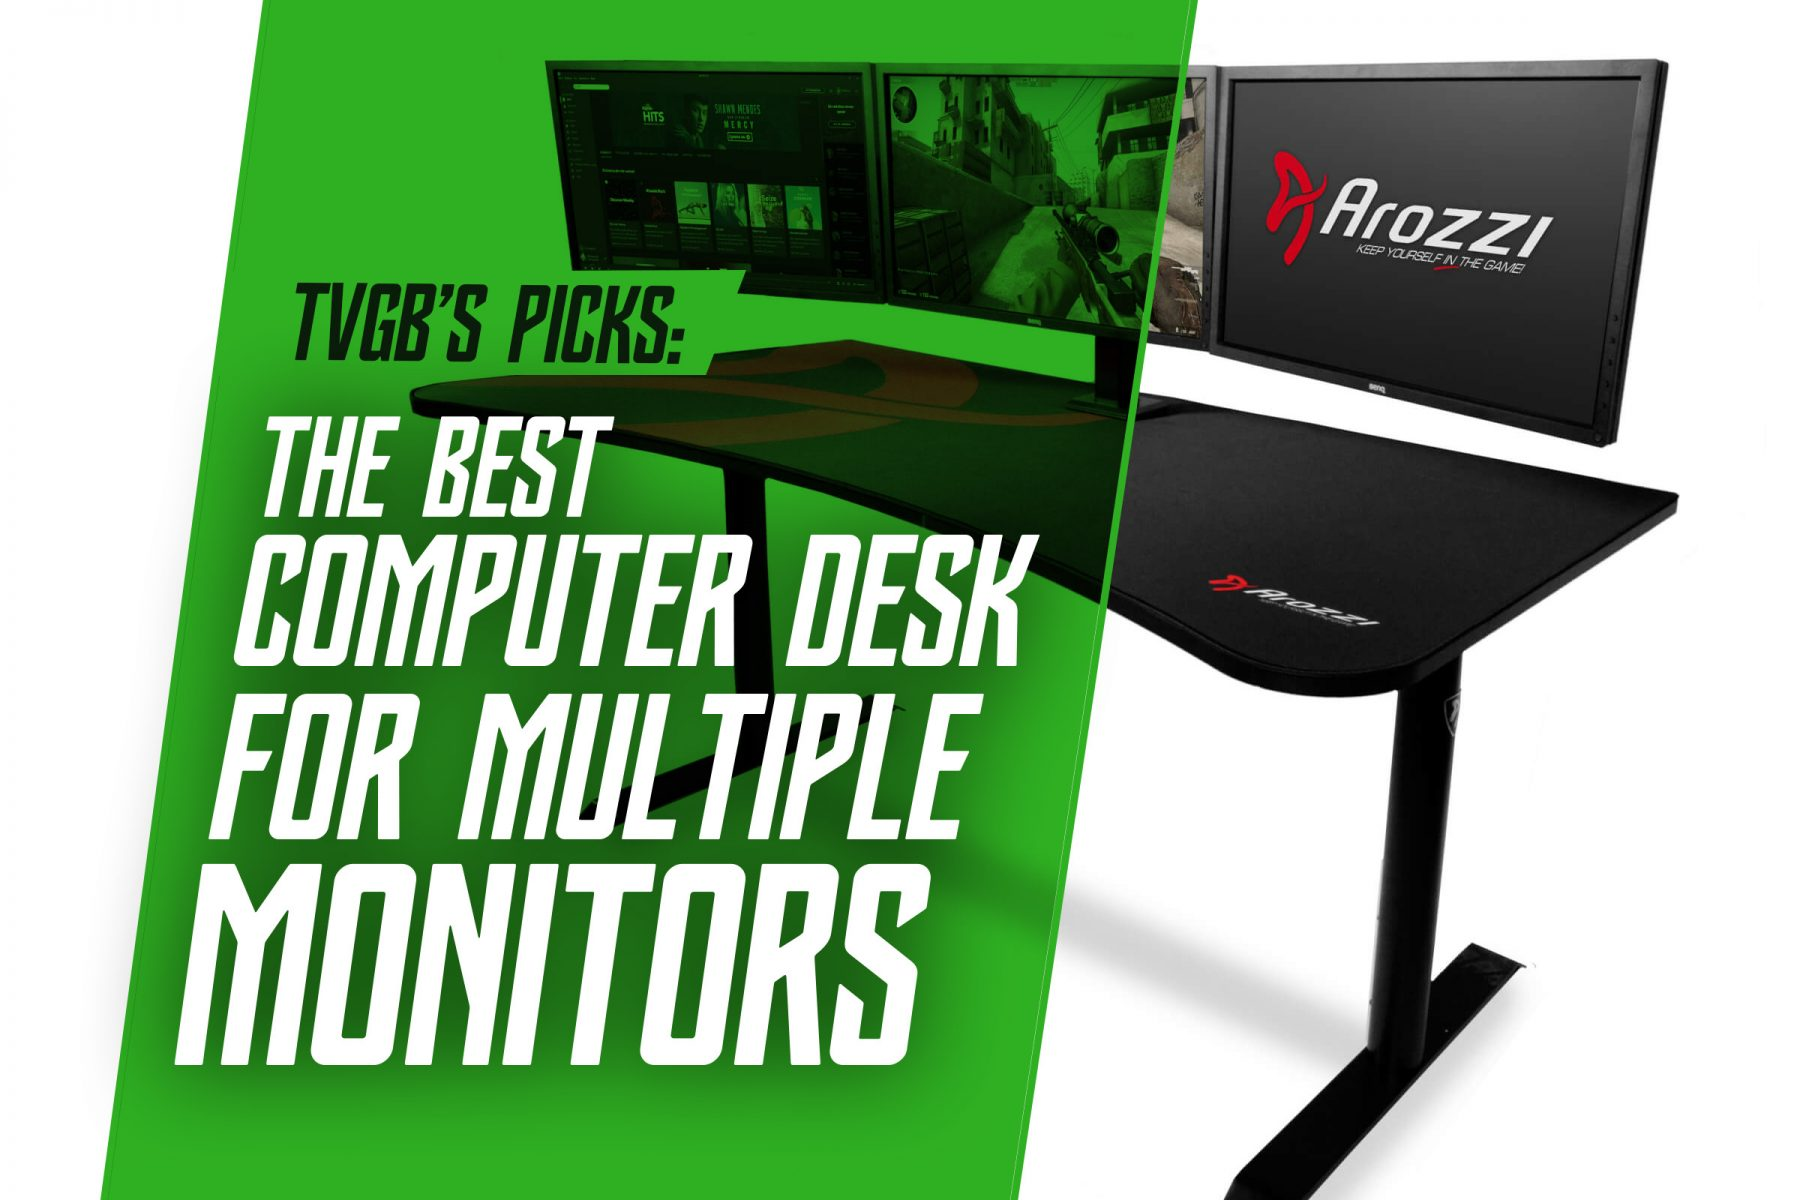 The Best Computer Desk for Dual Monitors (4 Picks)